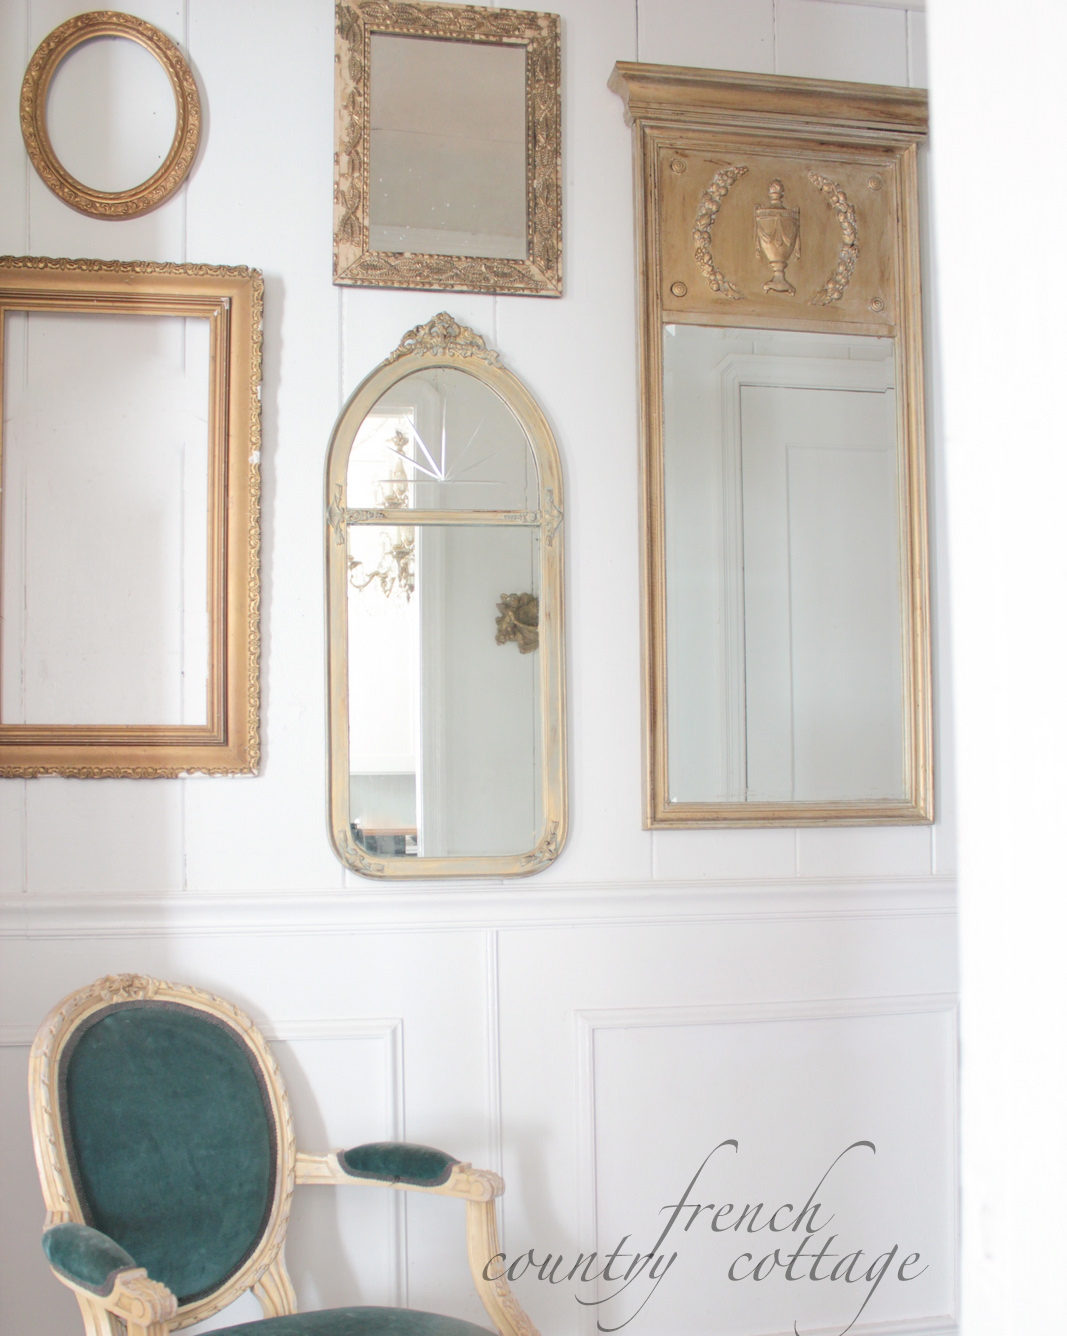 Gallery Wall of Frames & Mirrors - FRENCH COUNTRY COTTAGE